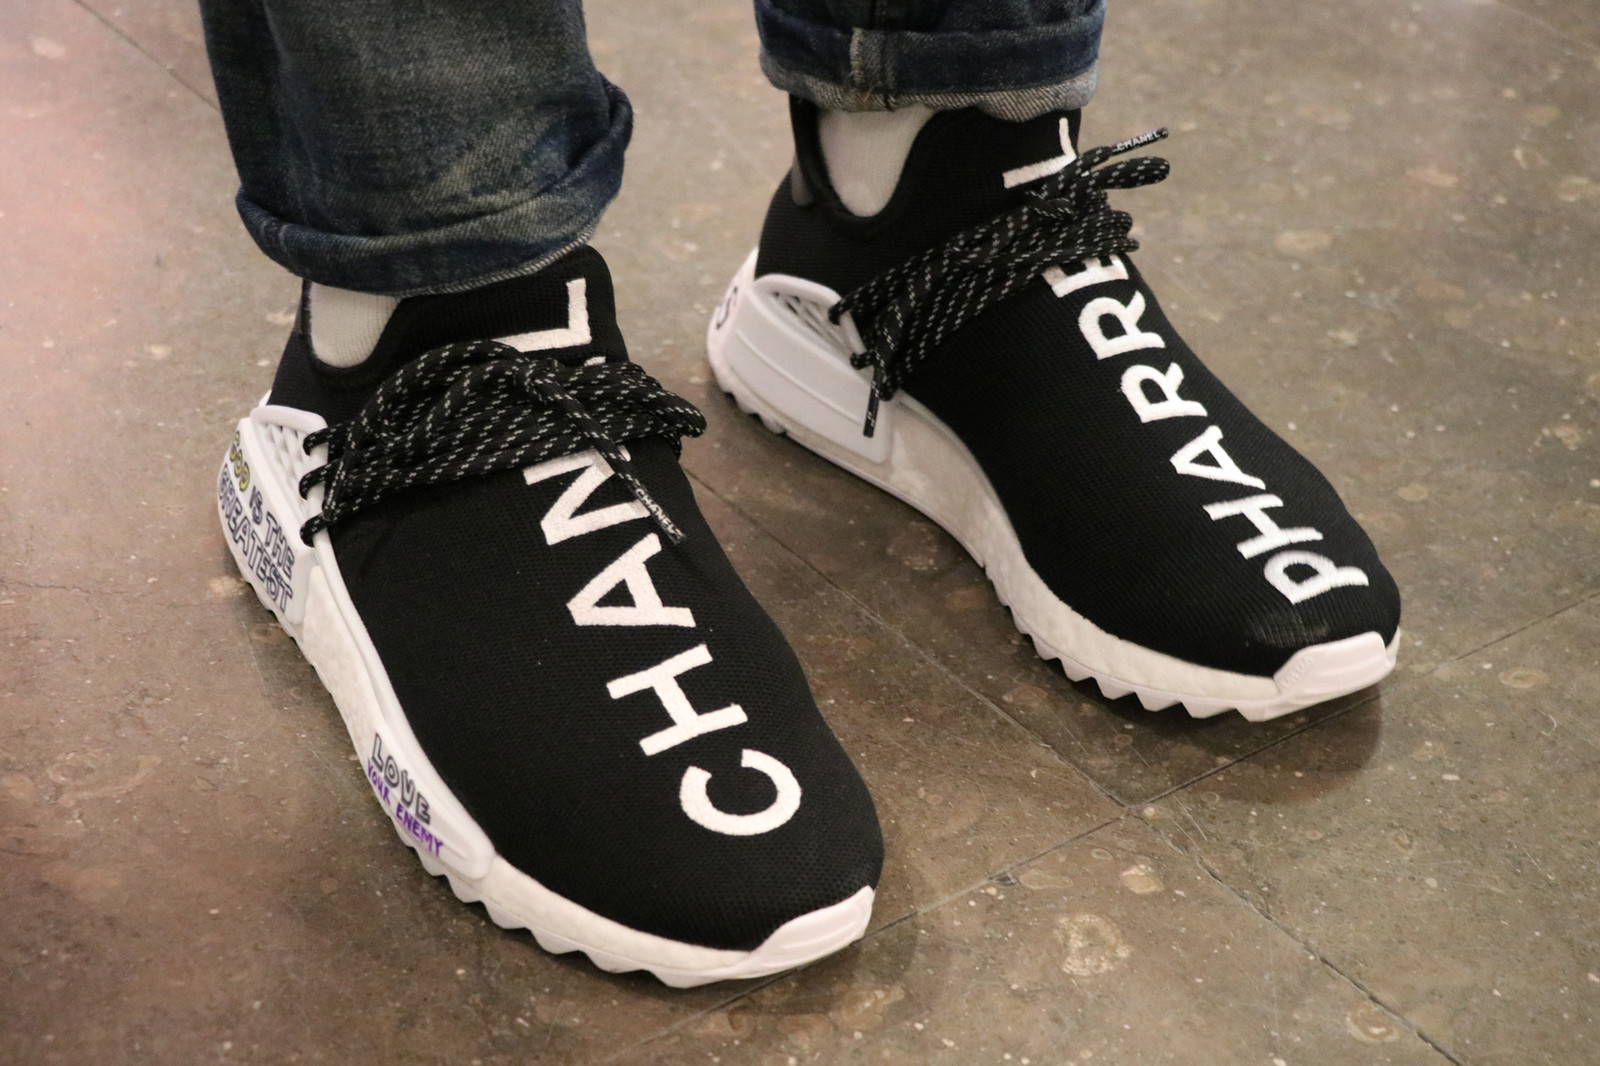 817adaf4e Pharrell Williams adidas Originals Hu NMD Chanel colette Paris Footwear  Sneaker